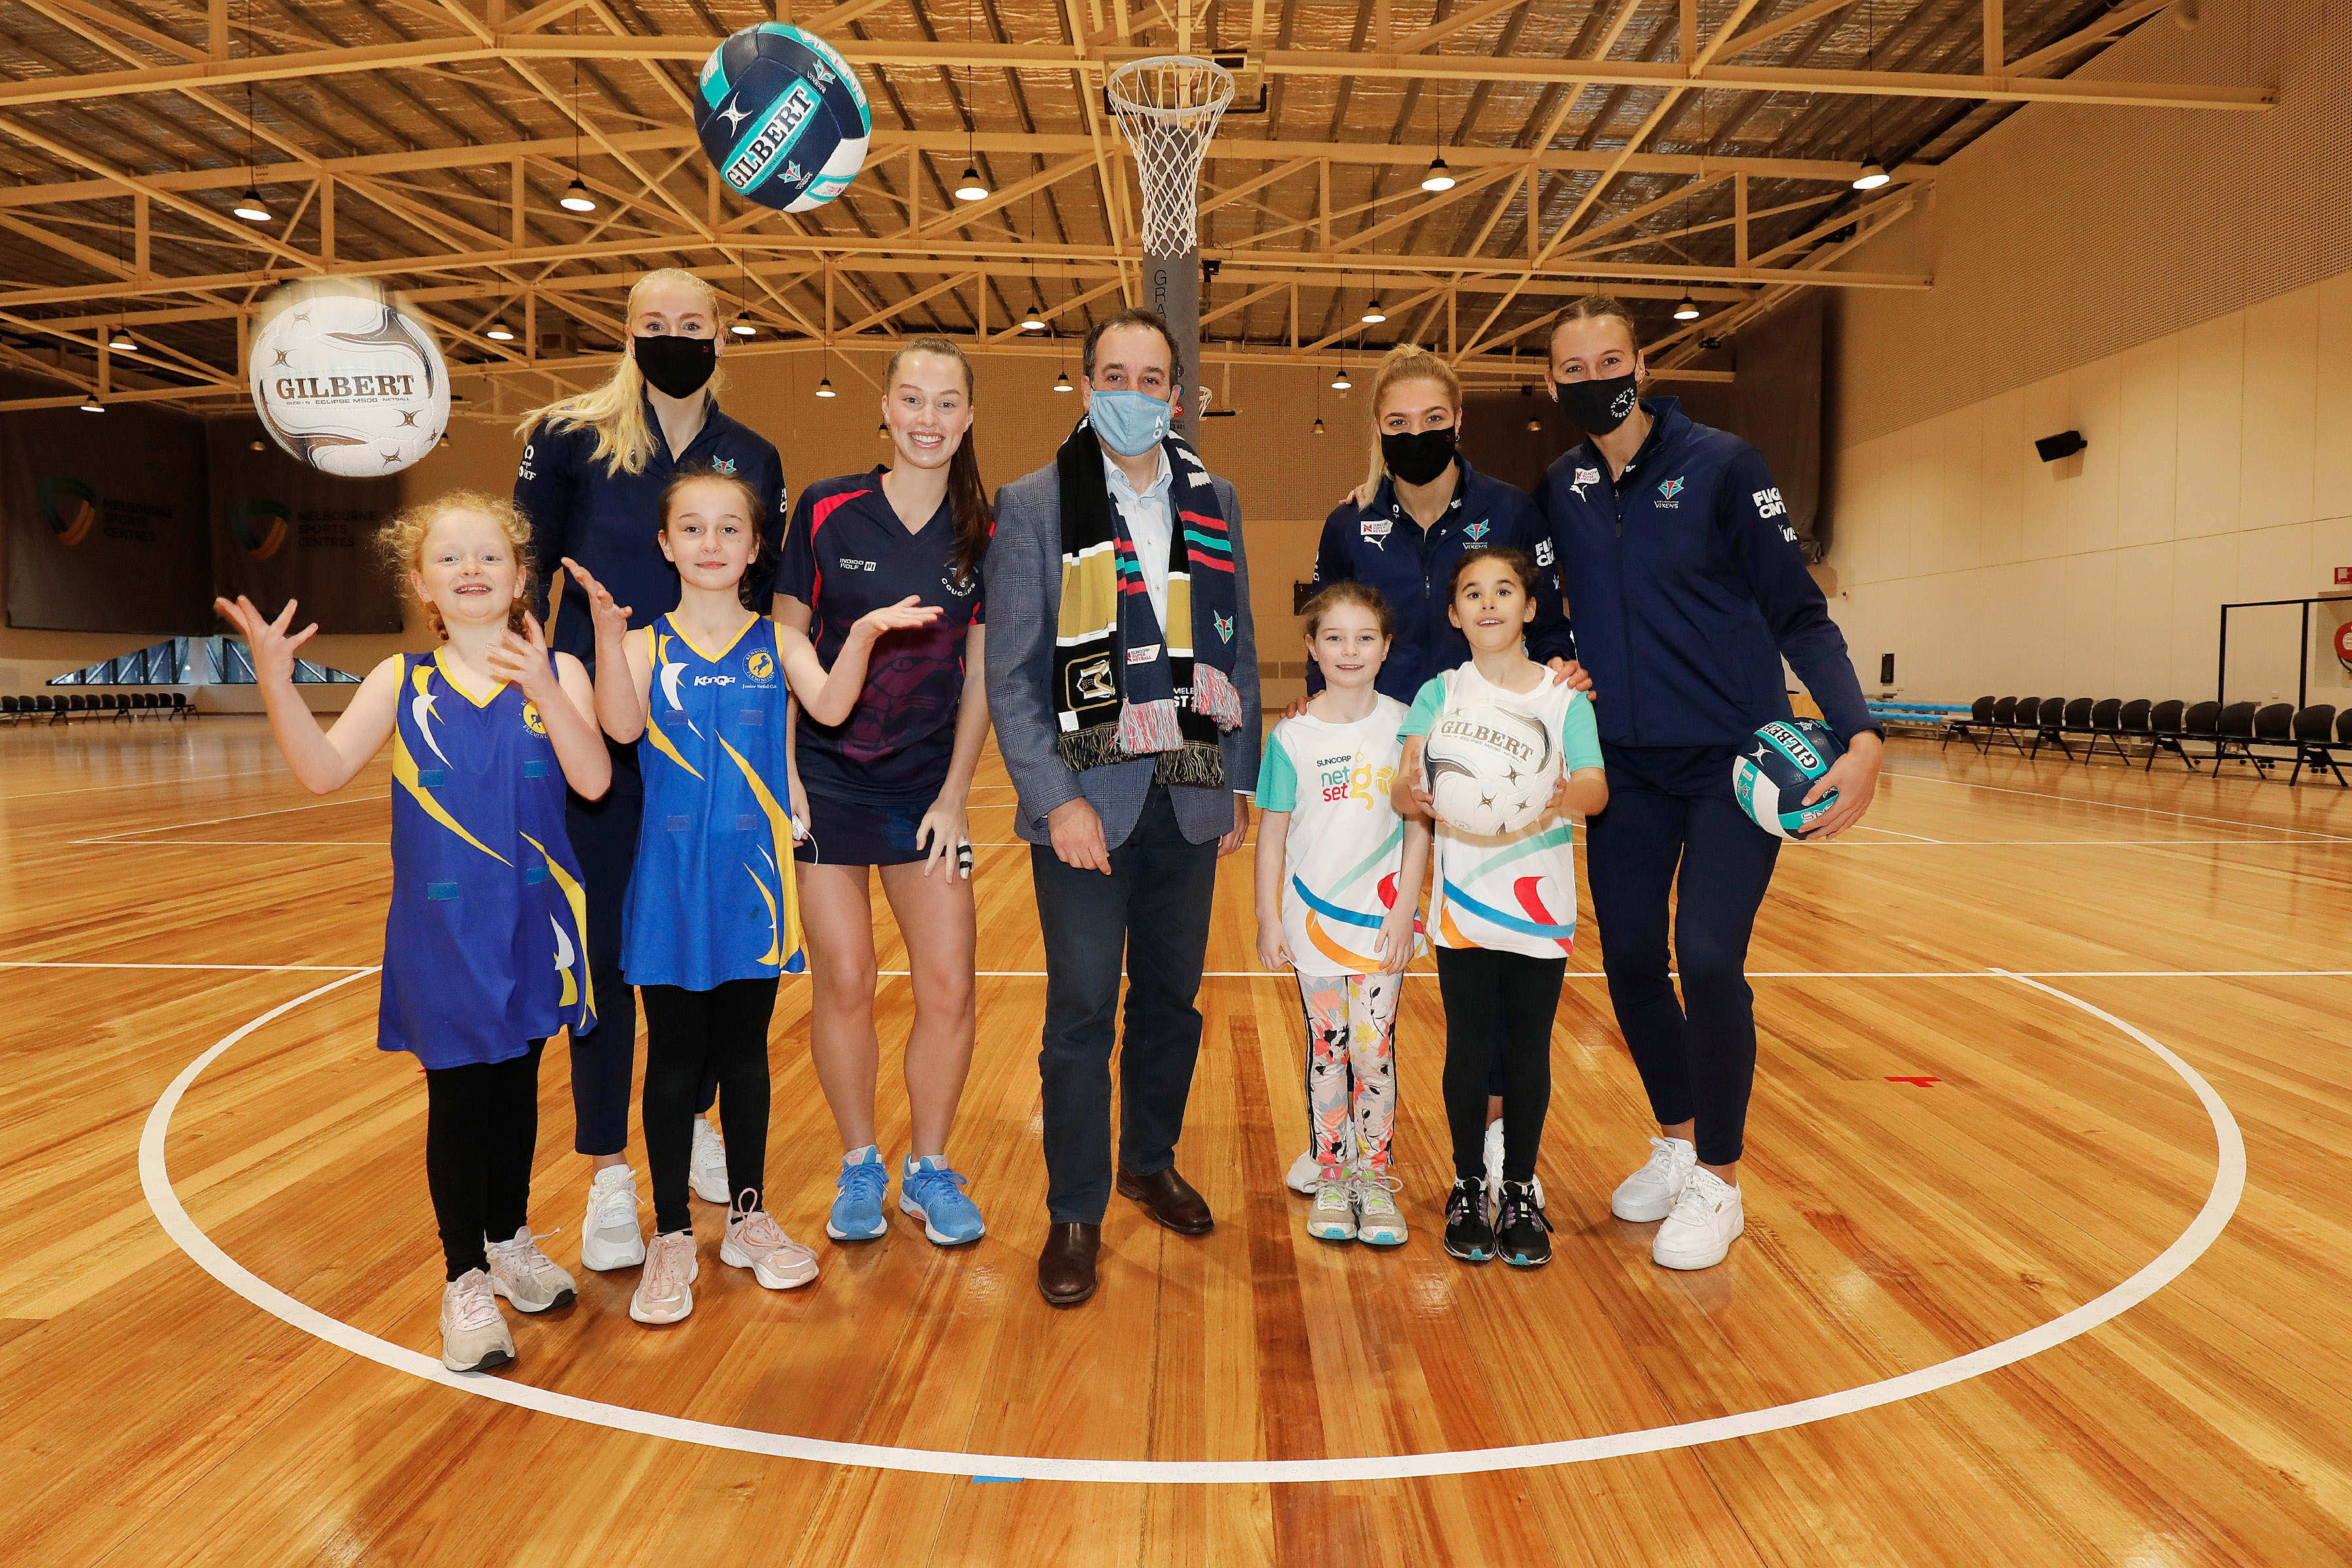 Netballers standing with children who have thrown two netballs in the air